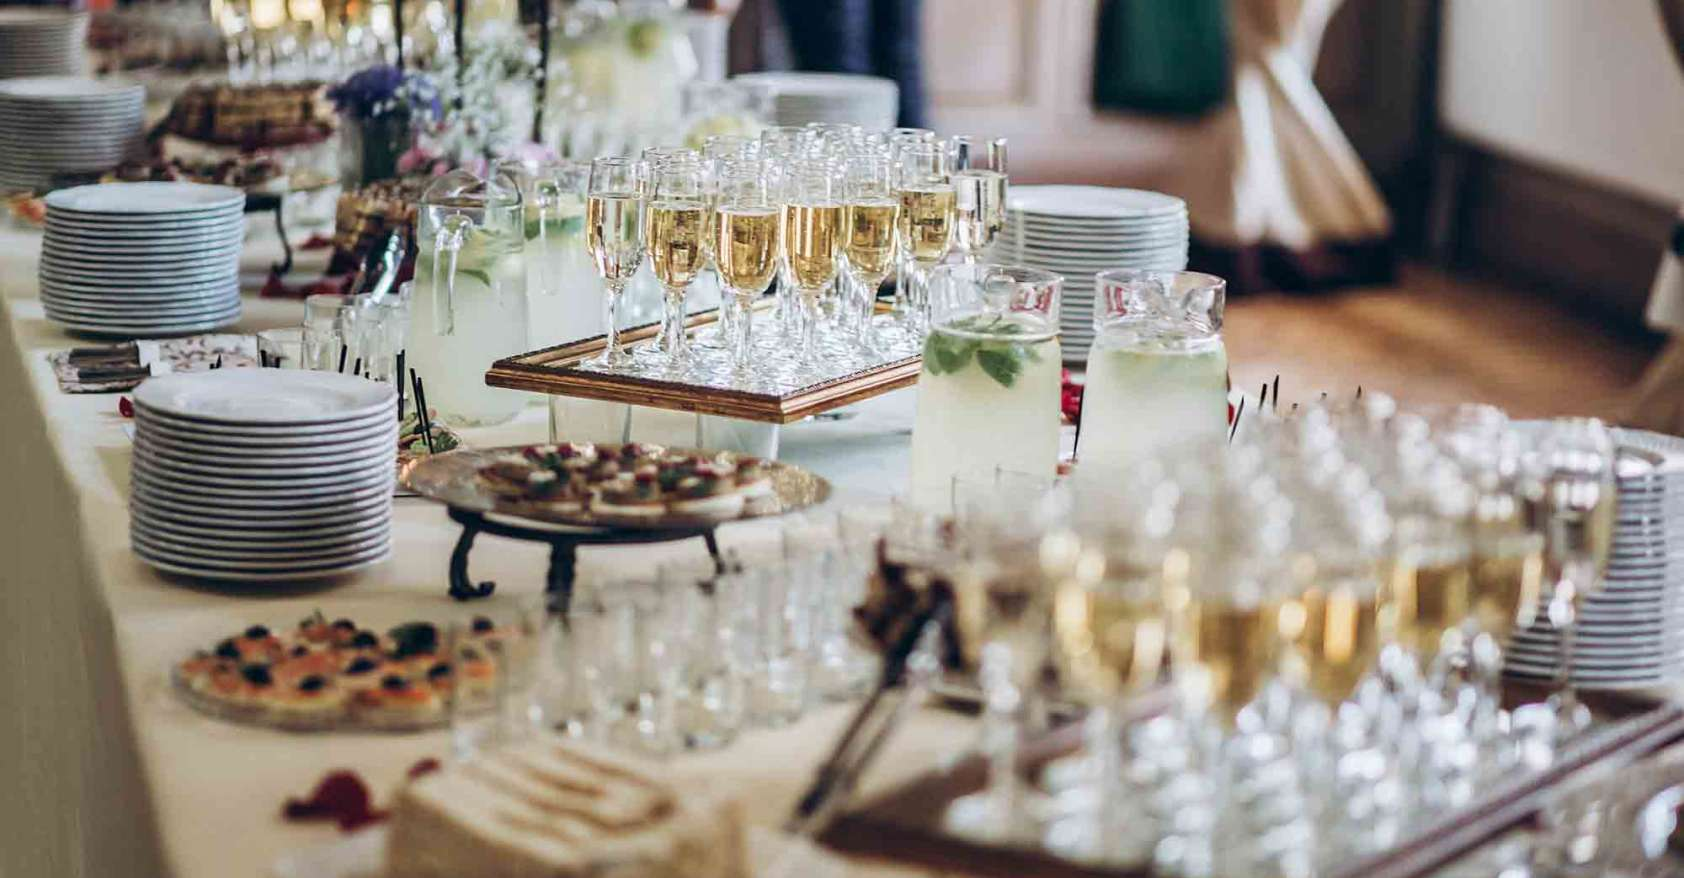 stylish champagne glasses and food appetizers on table to demonstrate how to plan menus for people with Autoimmune diseases